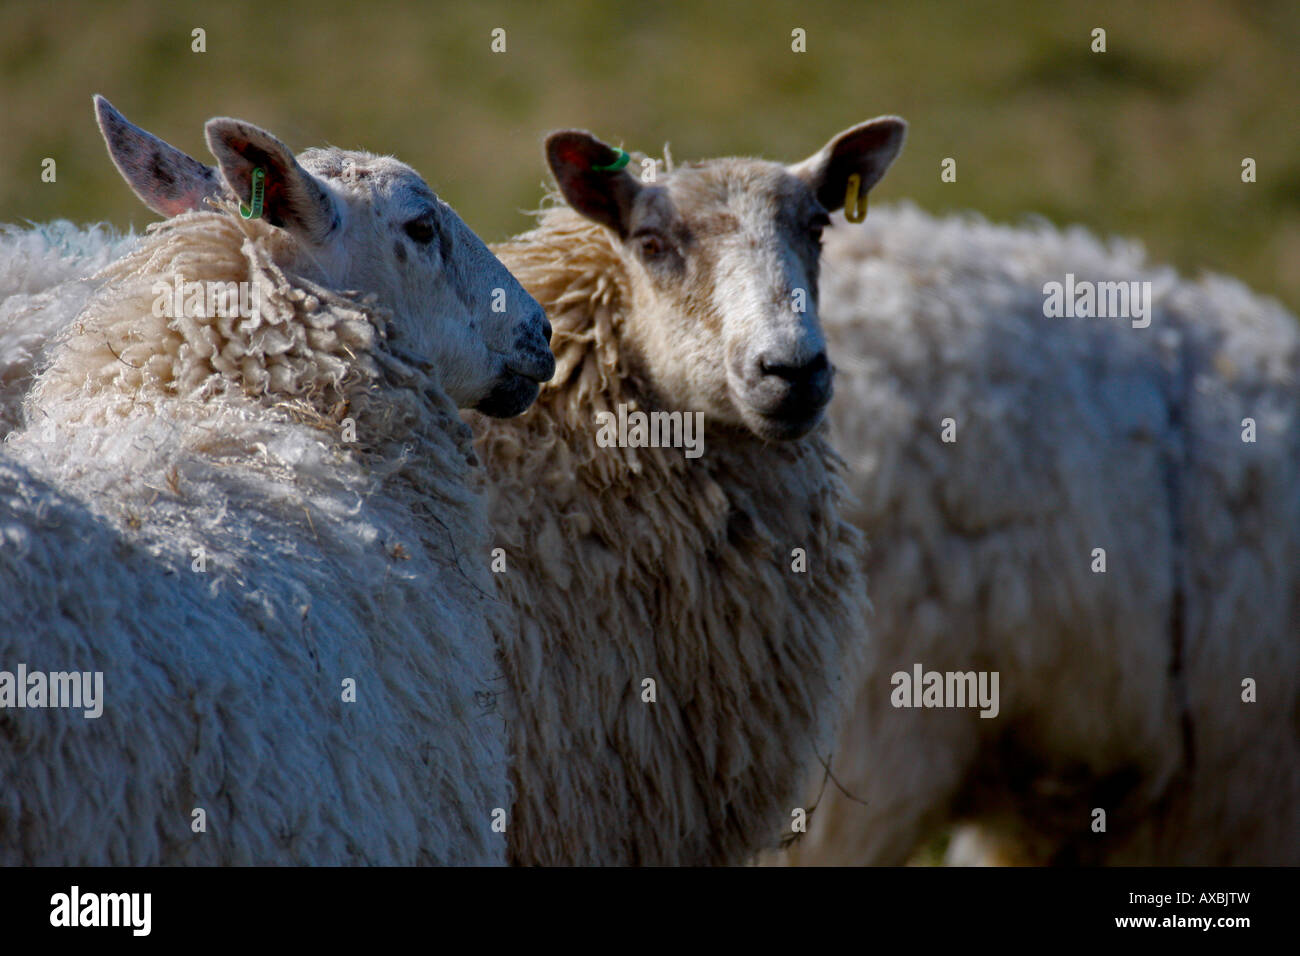 White woolly sheeps close up head.Farm, Pembrokeshire, Wales - Stock Image